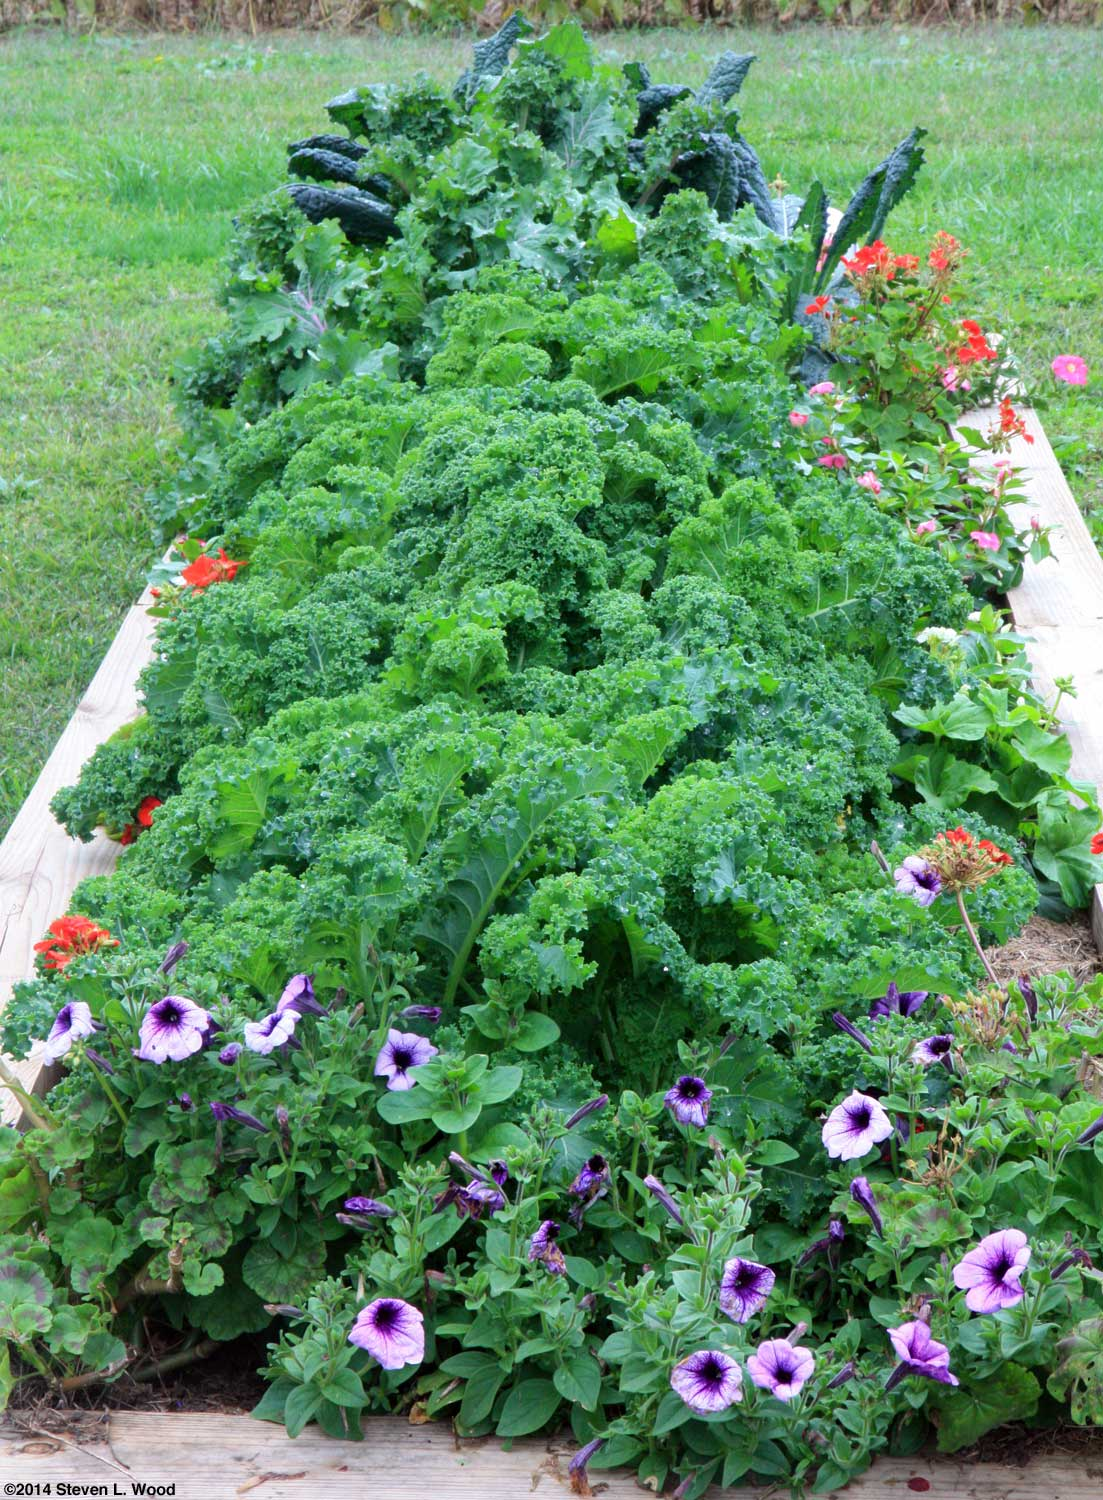 The old guys garden blog november 2014 don smith sent me an interesting link yesterday for free kindle ebooks on gardening fandeluxe Choice Image